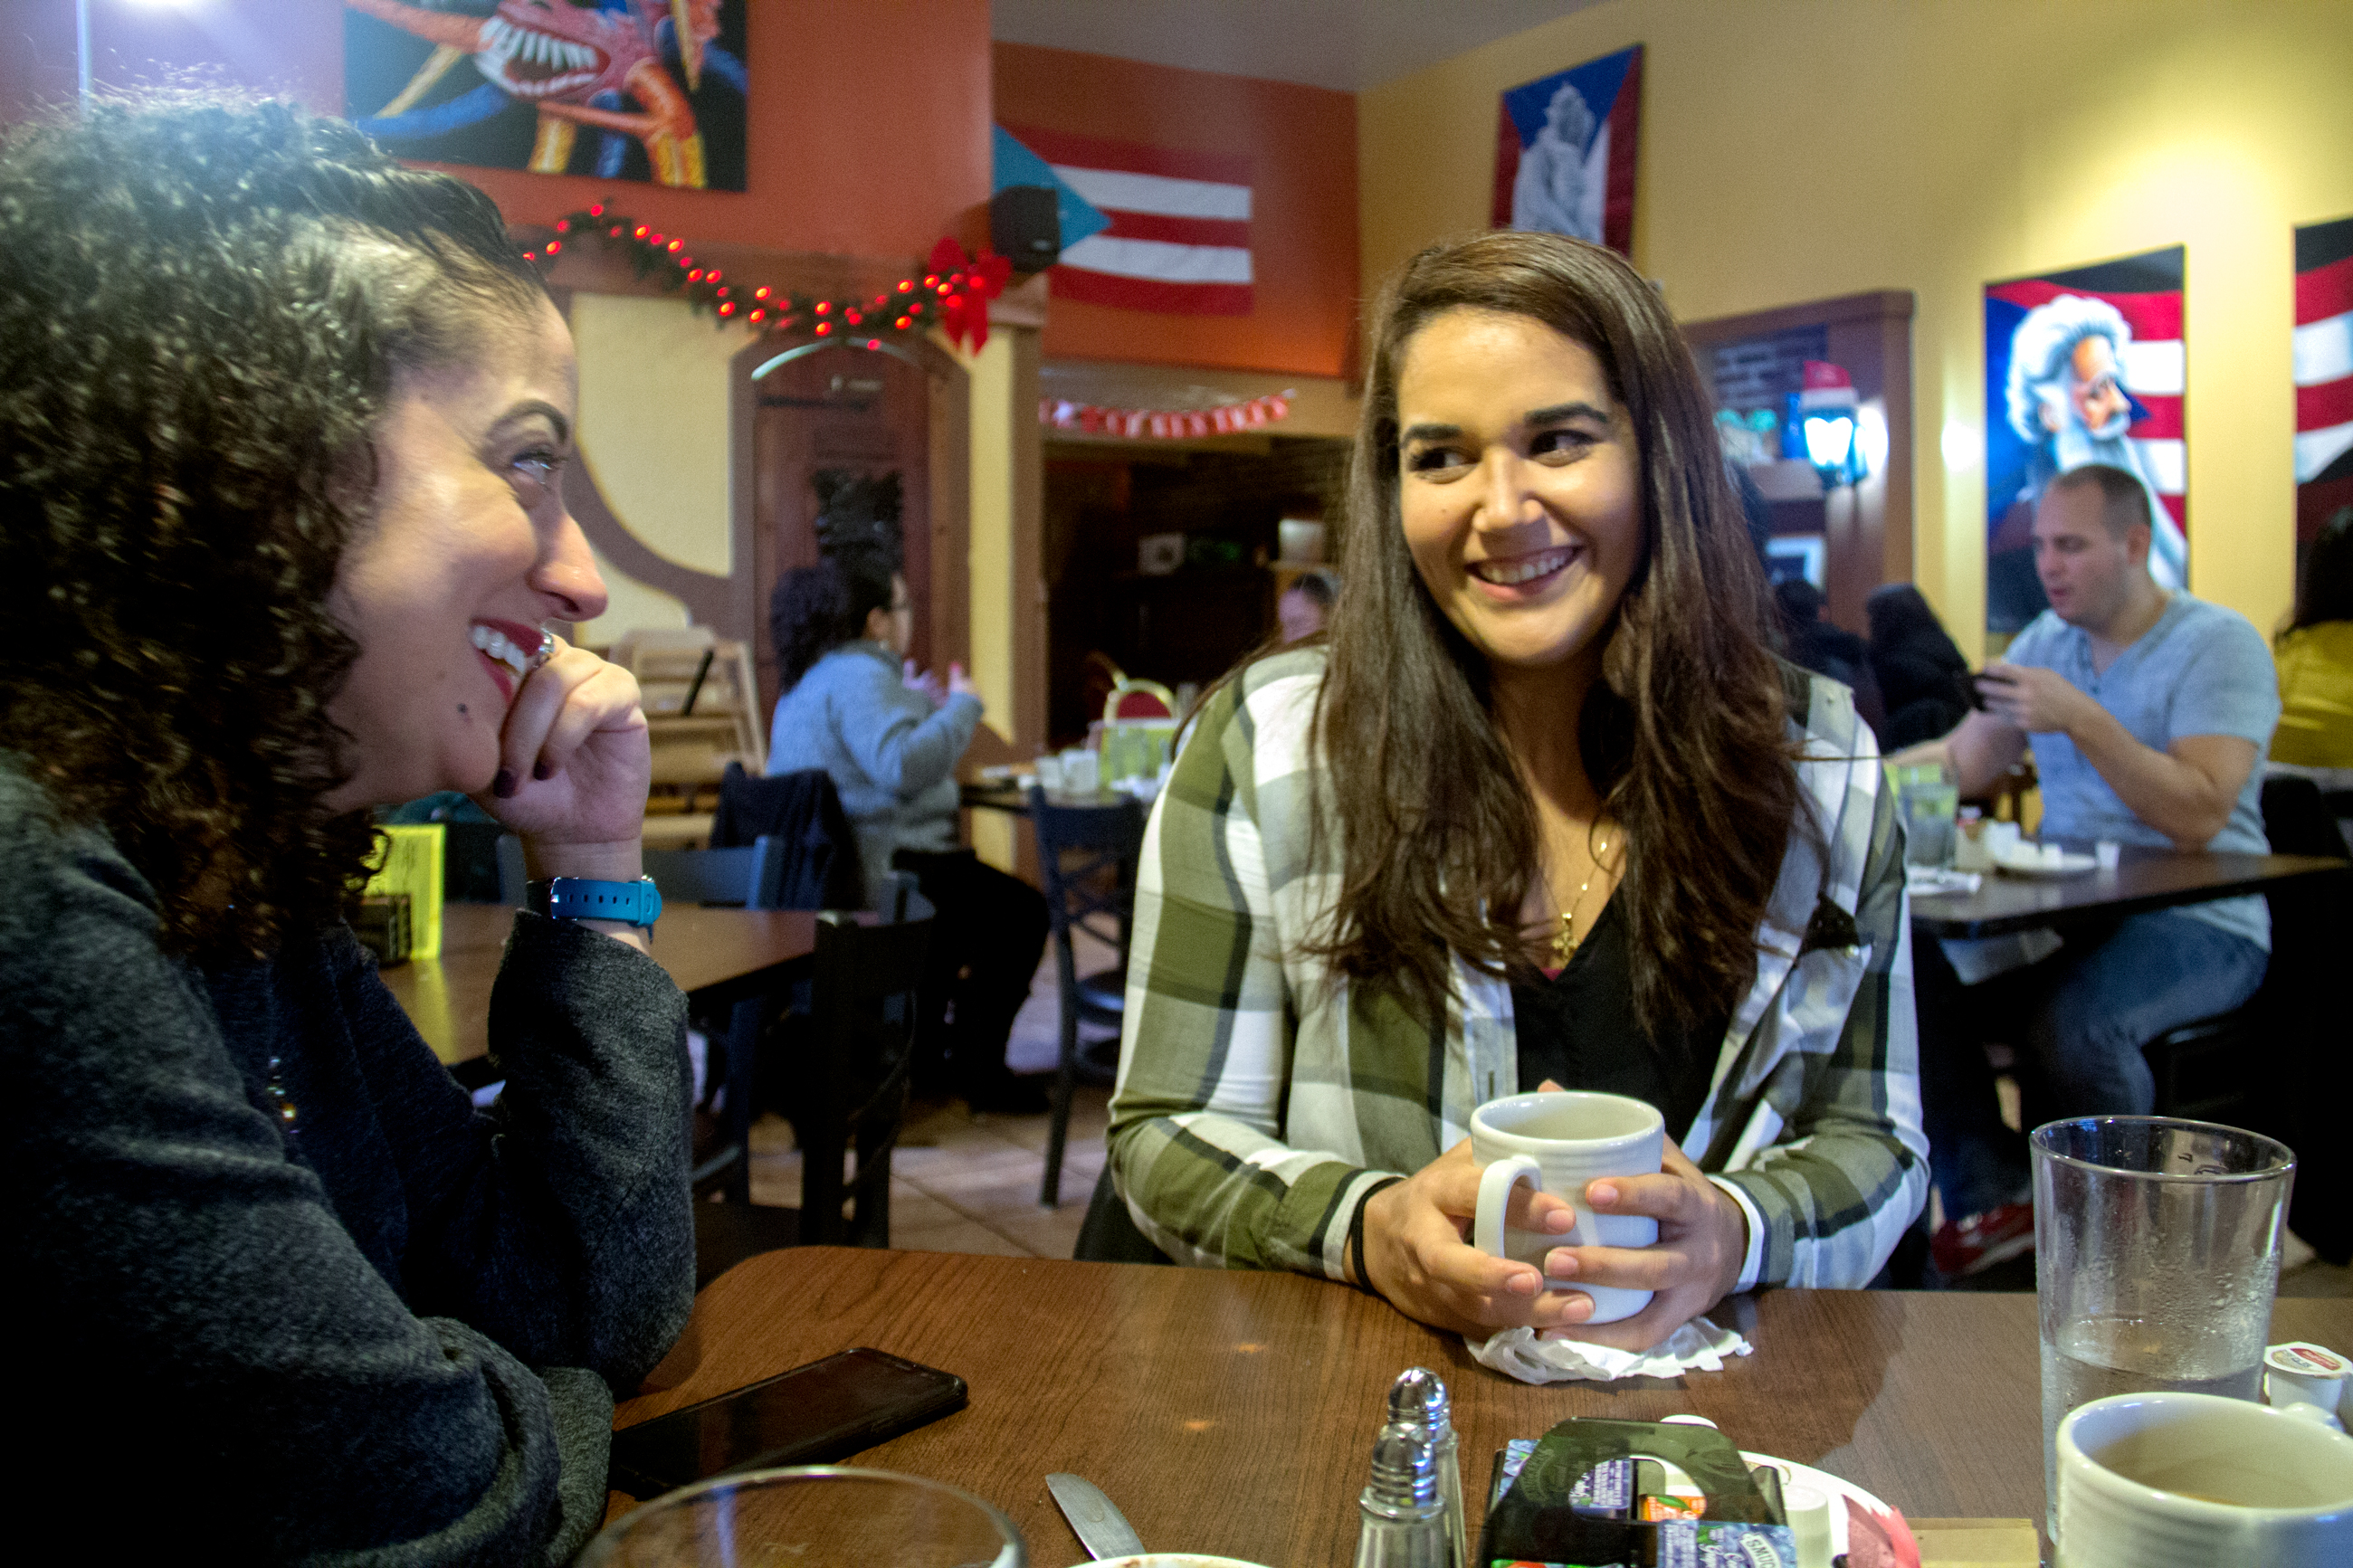 Yaira Rios (right) eats breakfast with her cousin, Natalia Delgado, recently at Nellie's Restaurant in Humboldt Park. (WBEZ/Lakeidra Chavis)